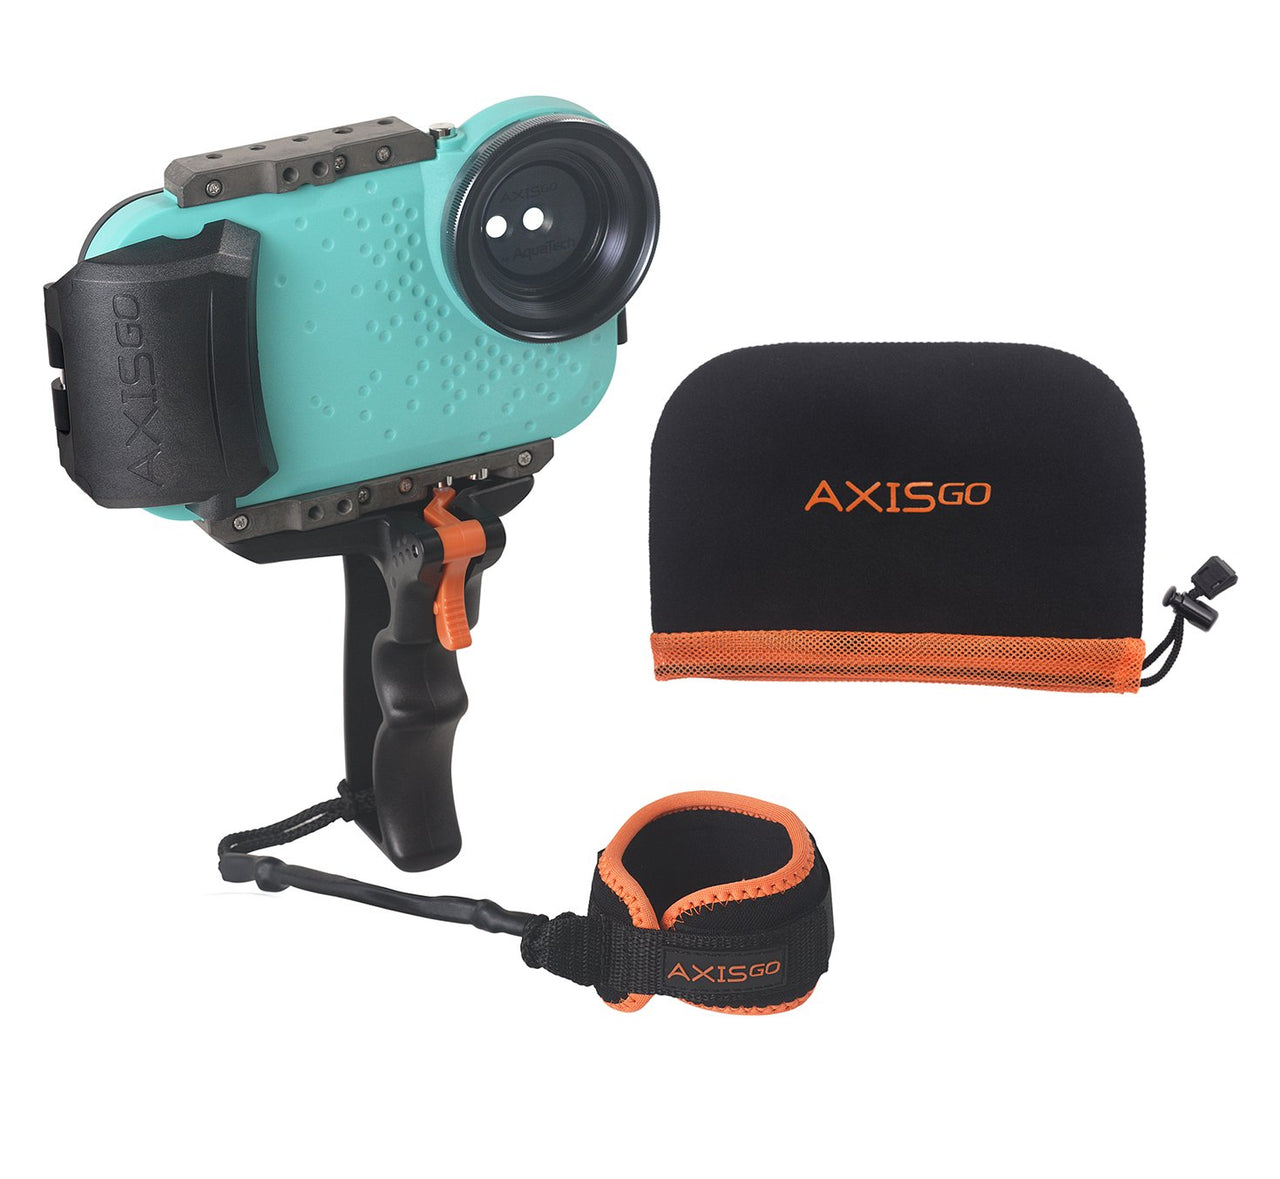 AxisGO 11 Pro & X/XS<br> Action Kit